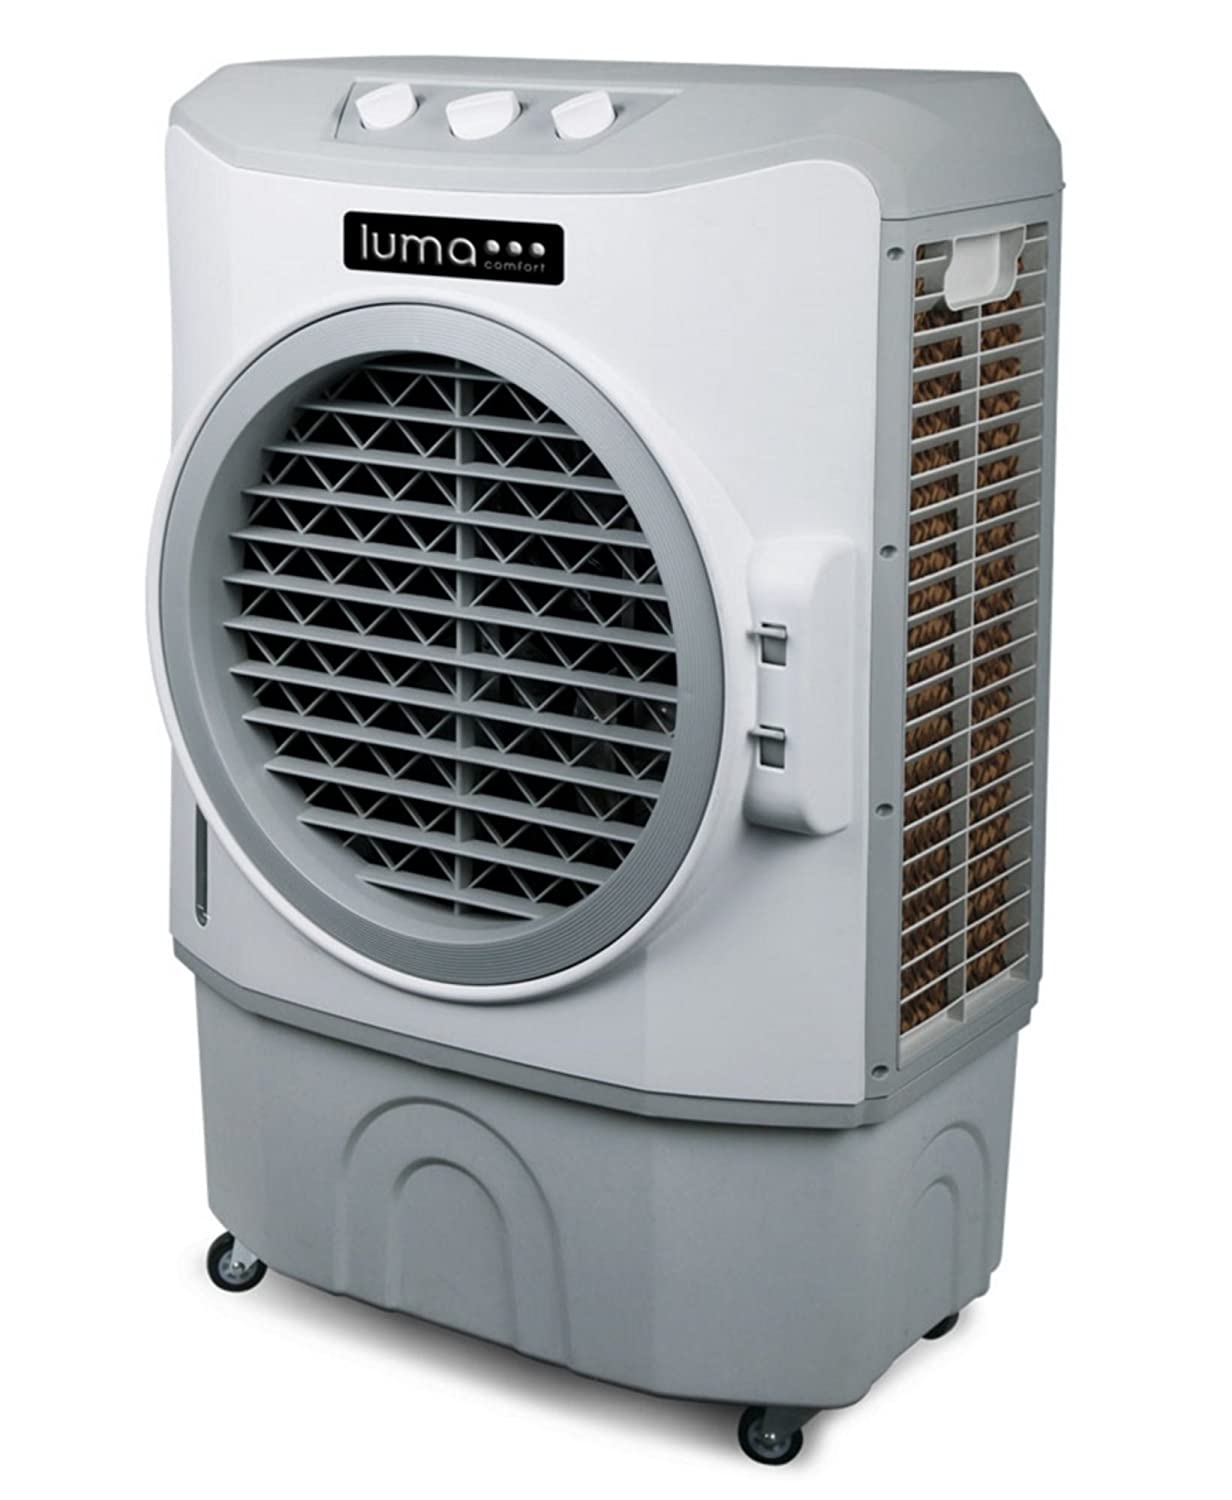 Luma Comfort EC220W High Power 1650 CFM Evaporative Cooler with 650 Square Foot Cooling Luma Comfort Corporation